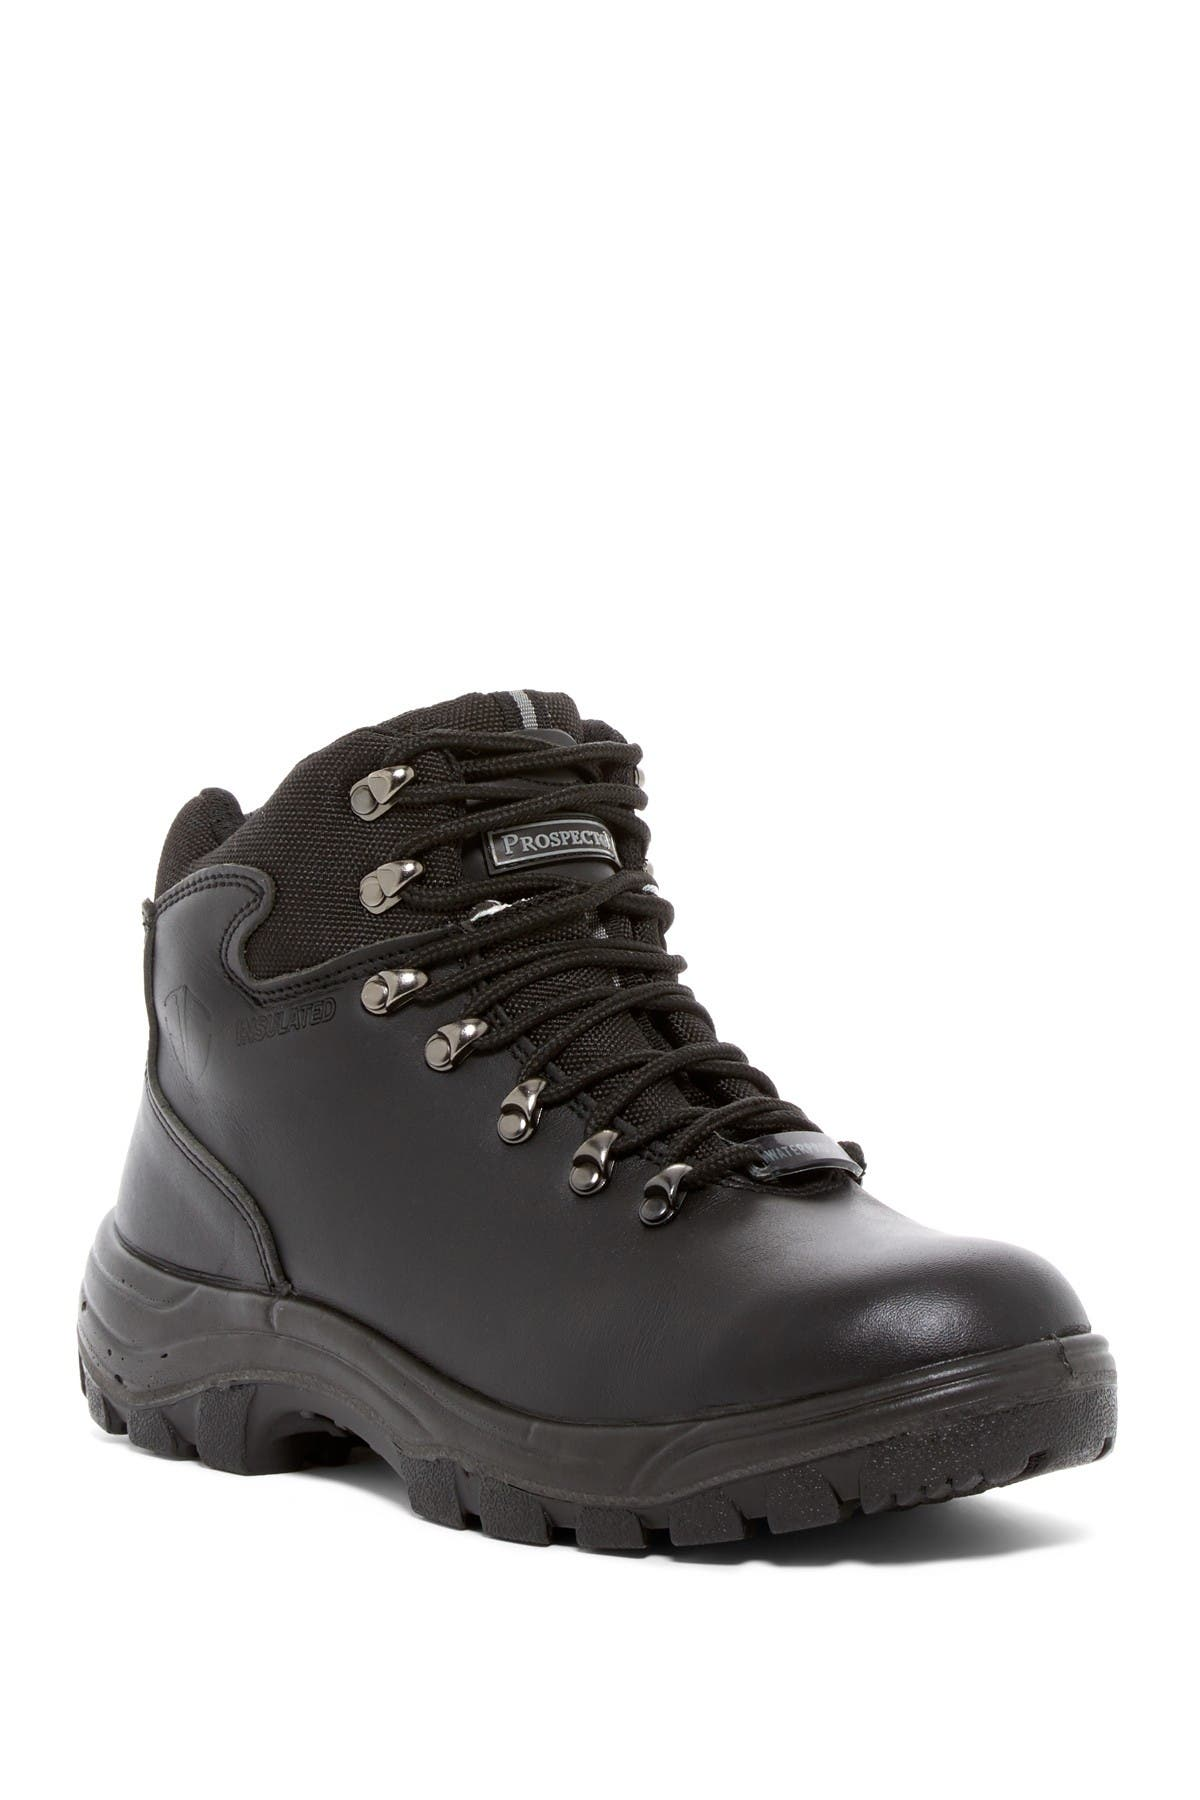 Image of PROSPECTOR Georgian Waterproof Oil Resistant Lace-Up Boot